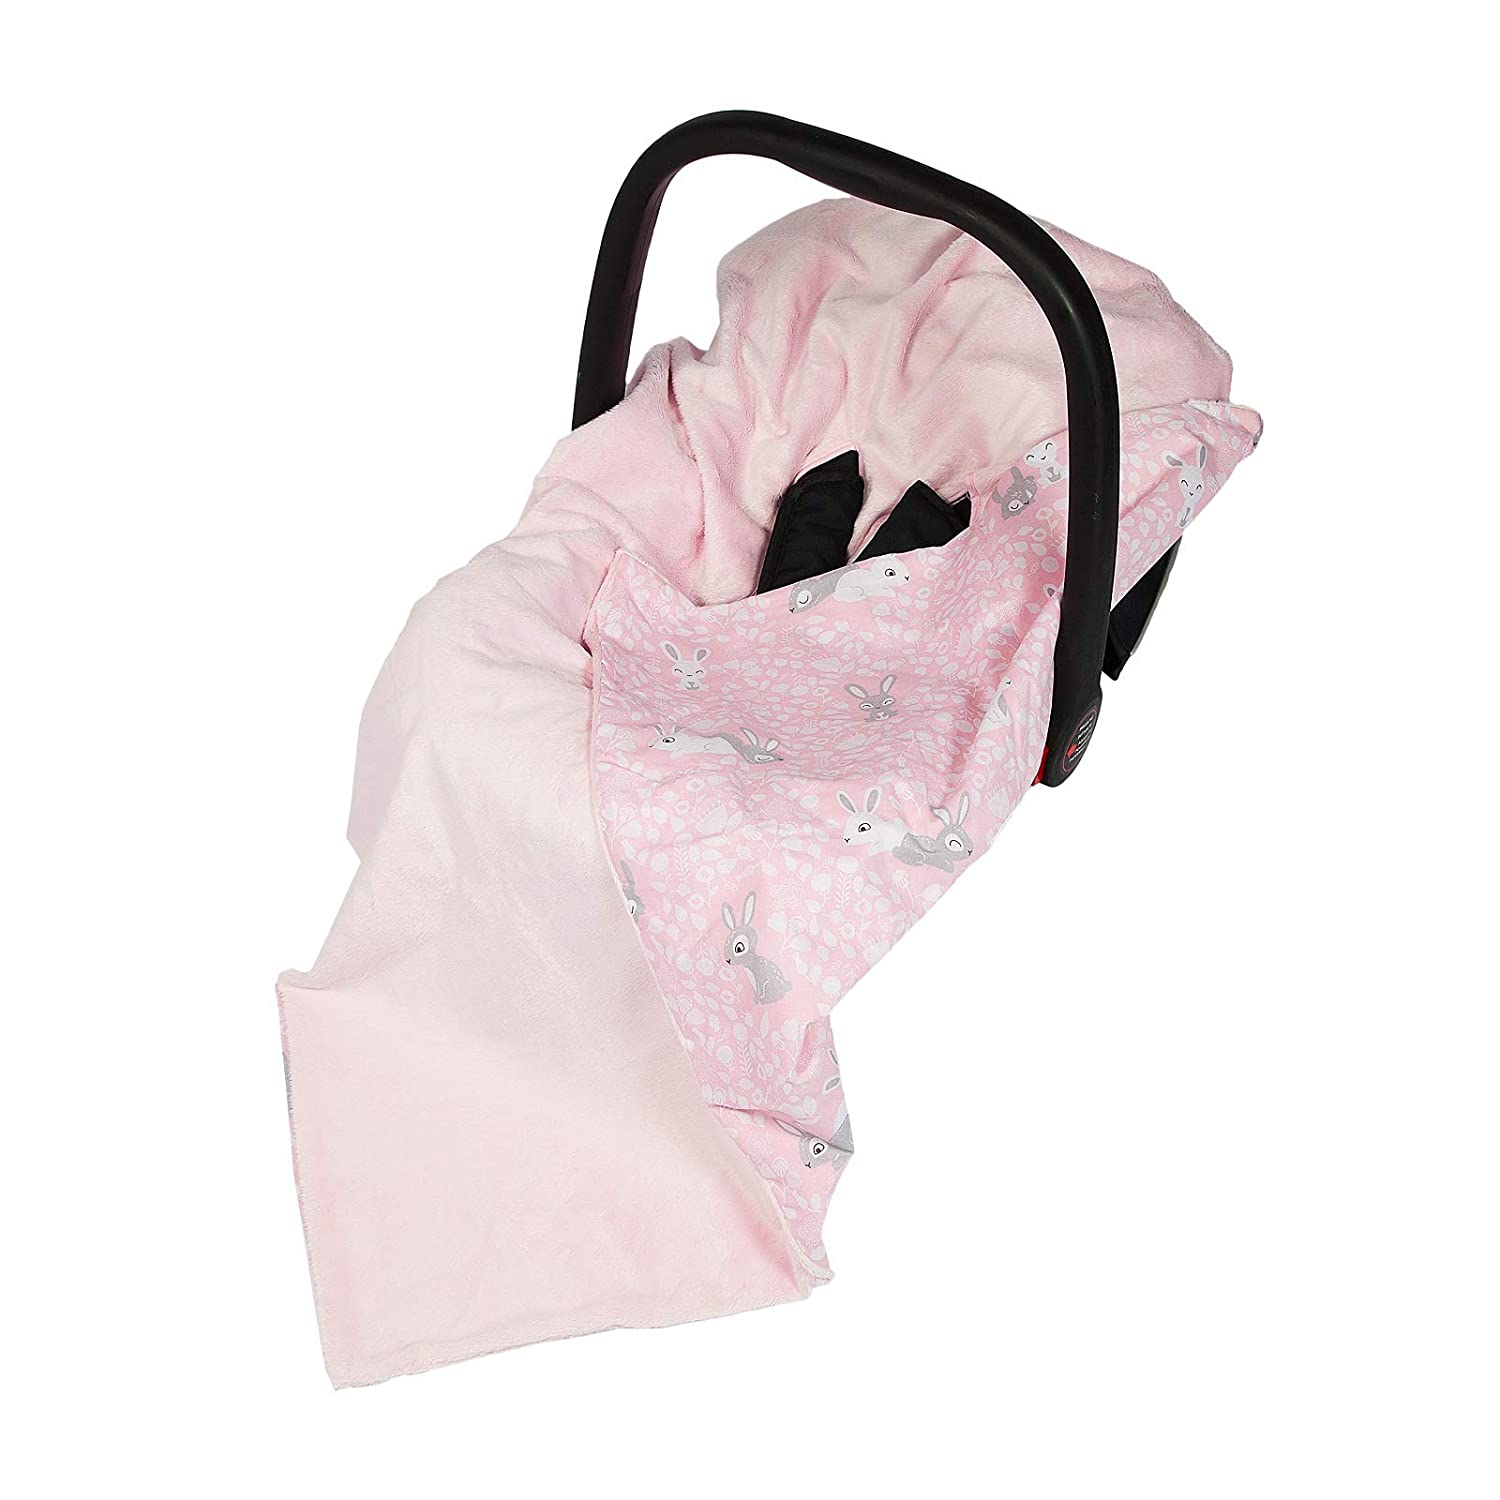 New Double-Sided Baby WRAP for CAR SEAT/Baby Travel WRAP/Baby CAR SEAT Blanket - Pink/Pink Bunny WRAP/Blanket / Cover/COSYTOES - FOOTMUFF! 100x100cm - WRAP with SEAT Belt Holes me baby